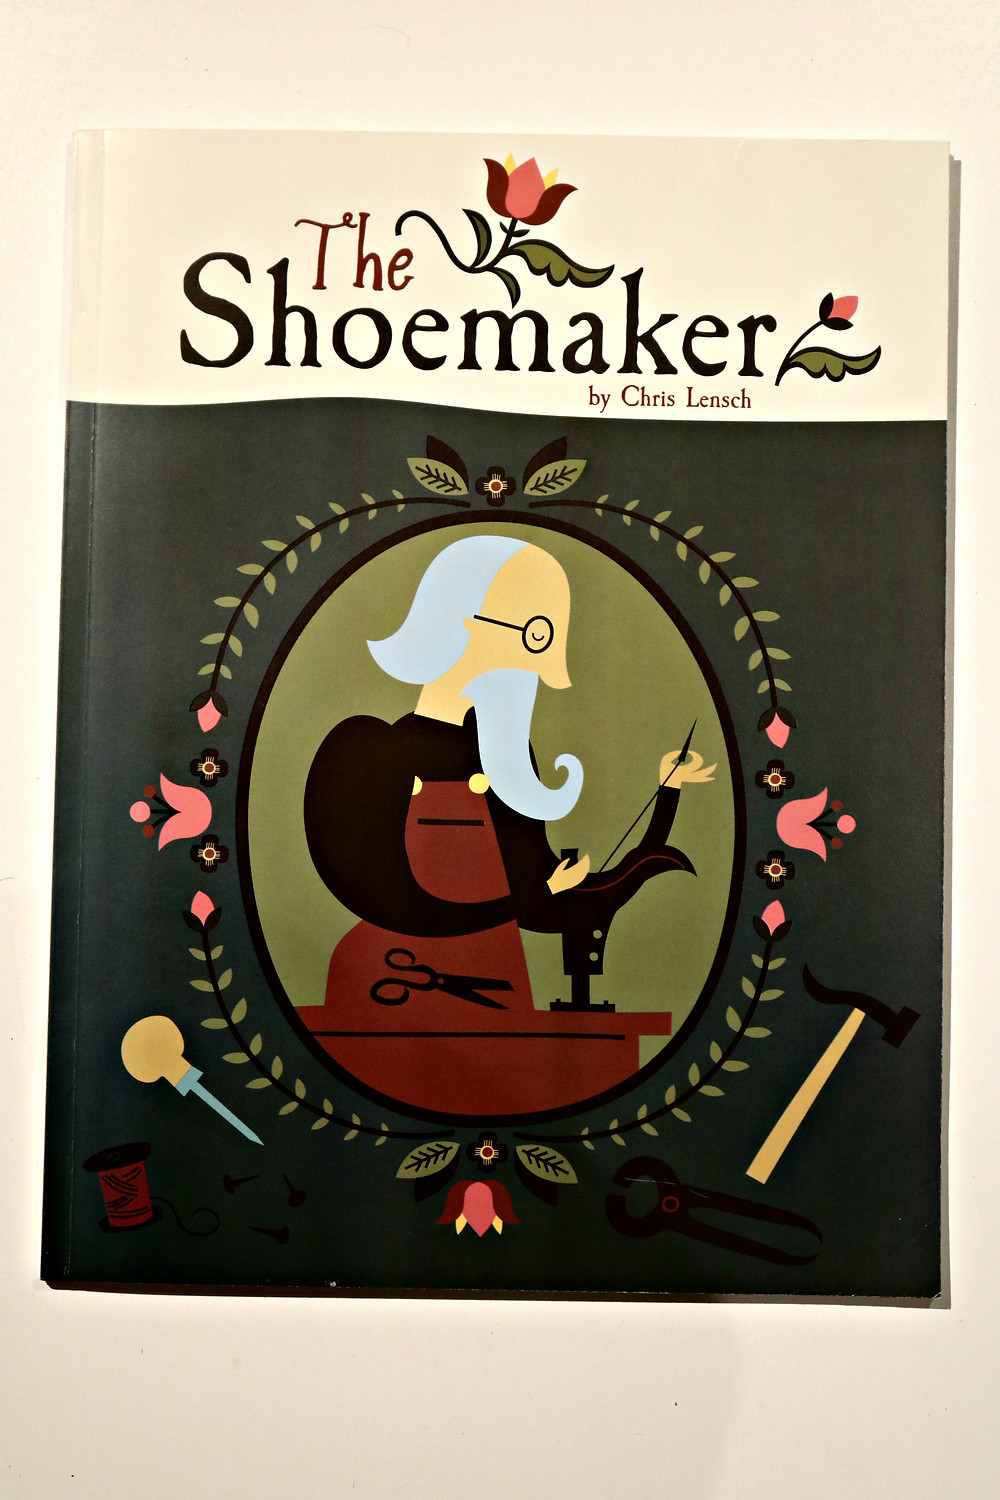 The Shoemaker picture book